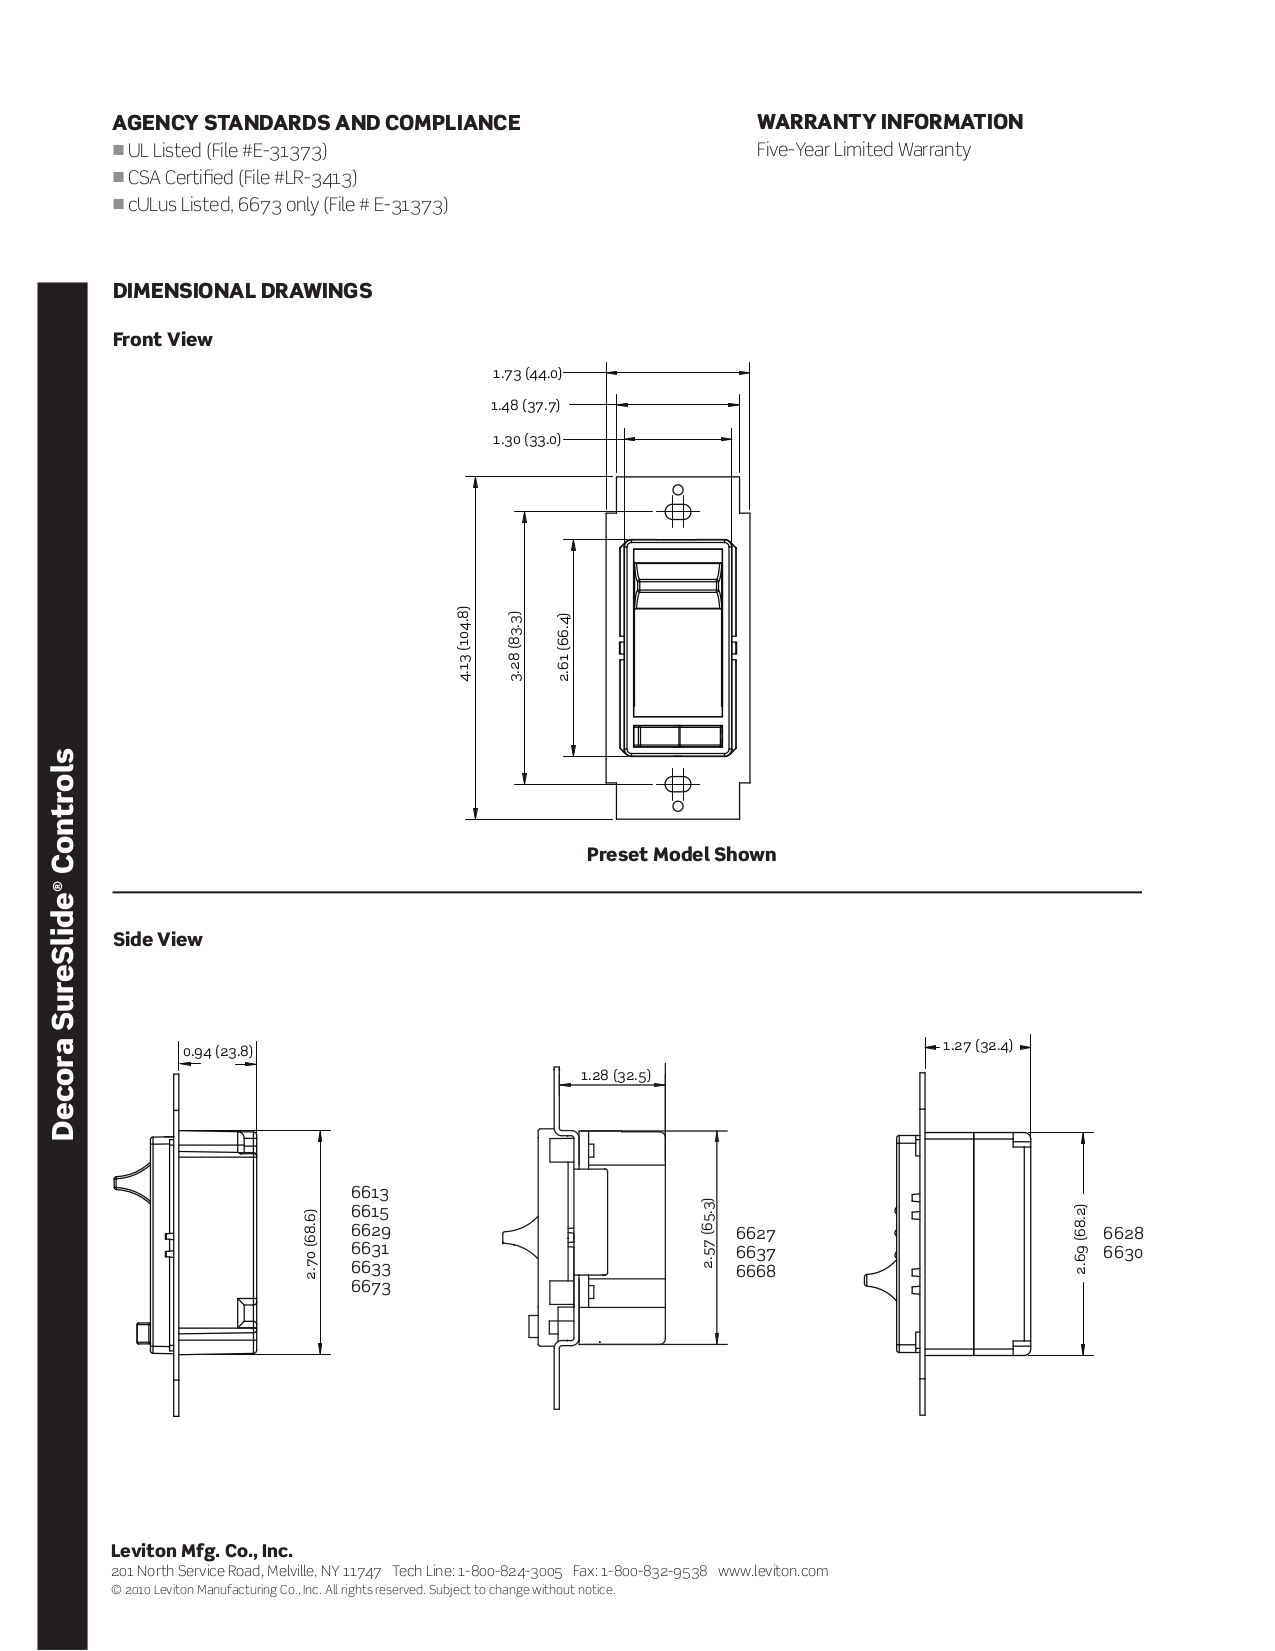 hight resolution of leviton 6633 p wiring diagram detailed schematics diagram leviton dimmers wiring diagrams leviton 6683 installation manual